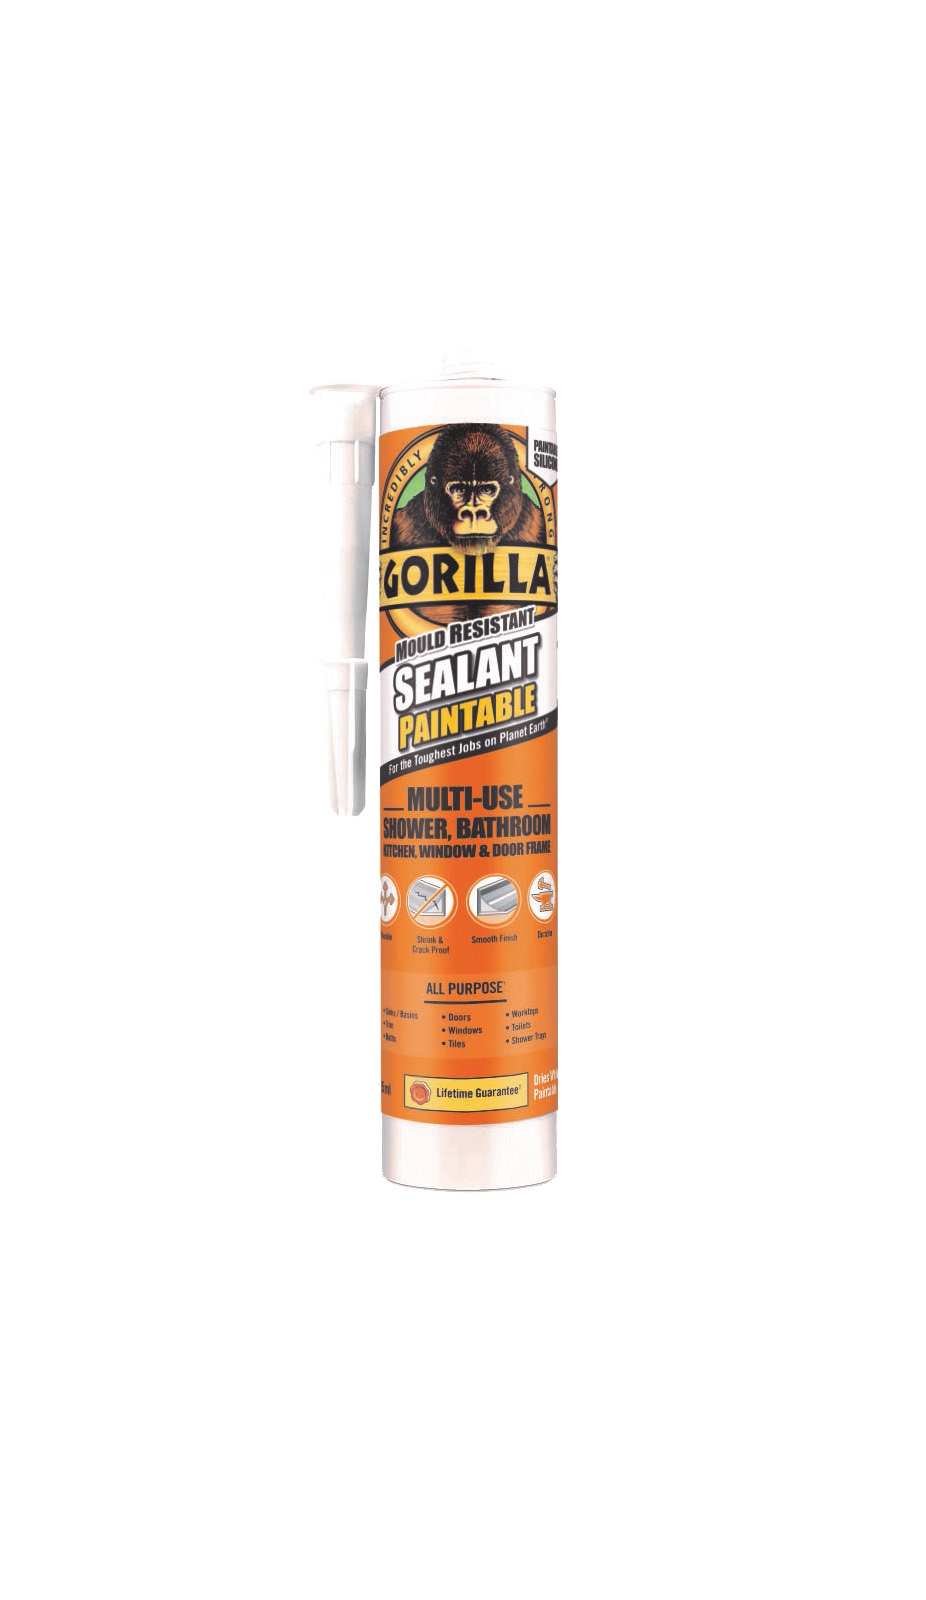 GORILLA SEALANT 265ML CART PAINTABLE